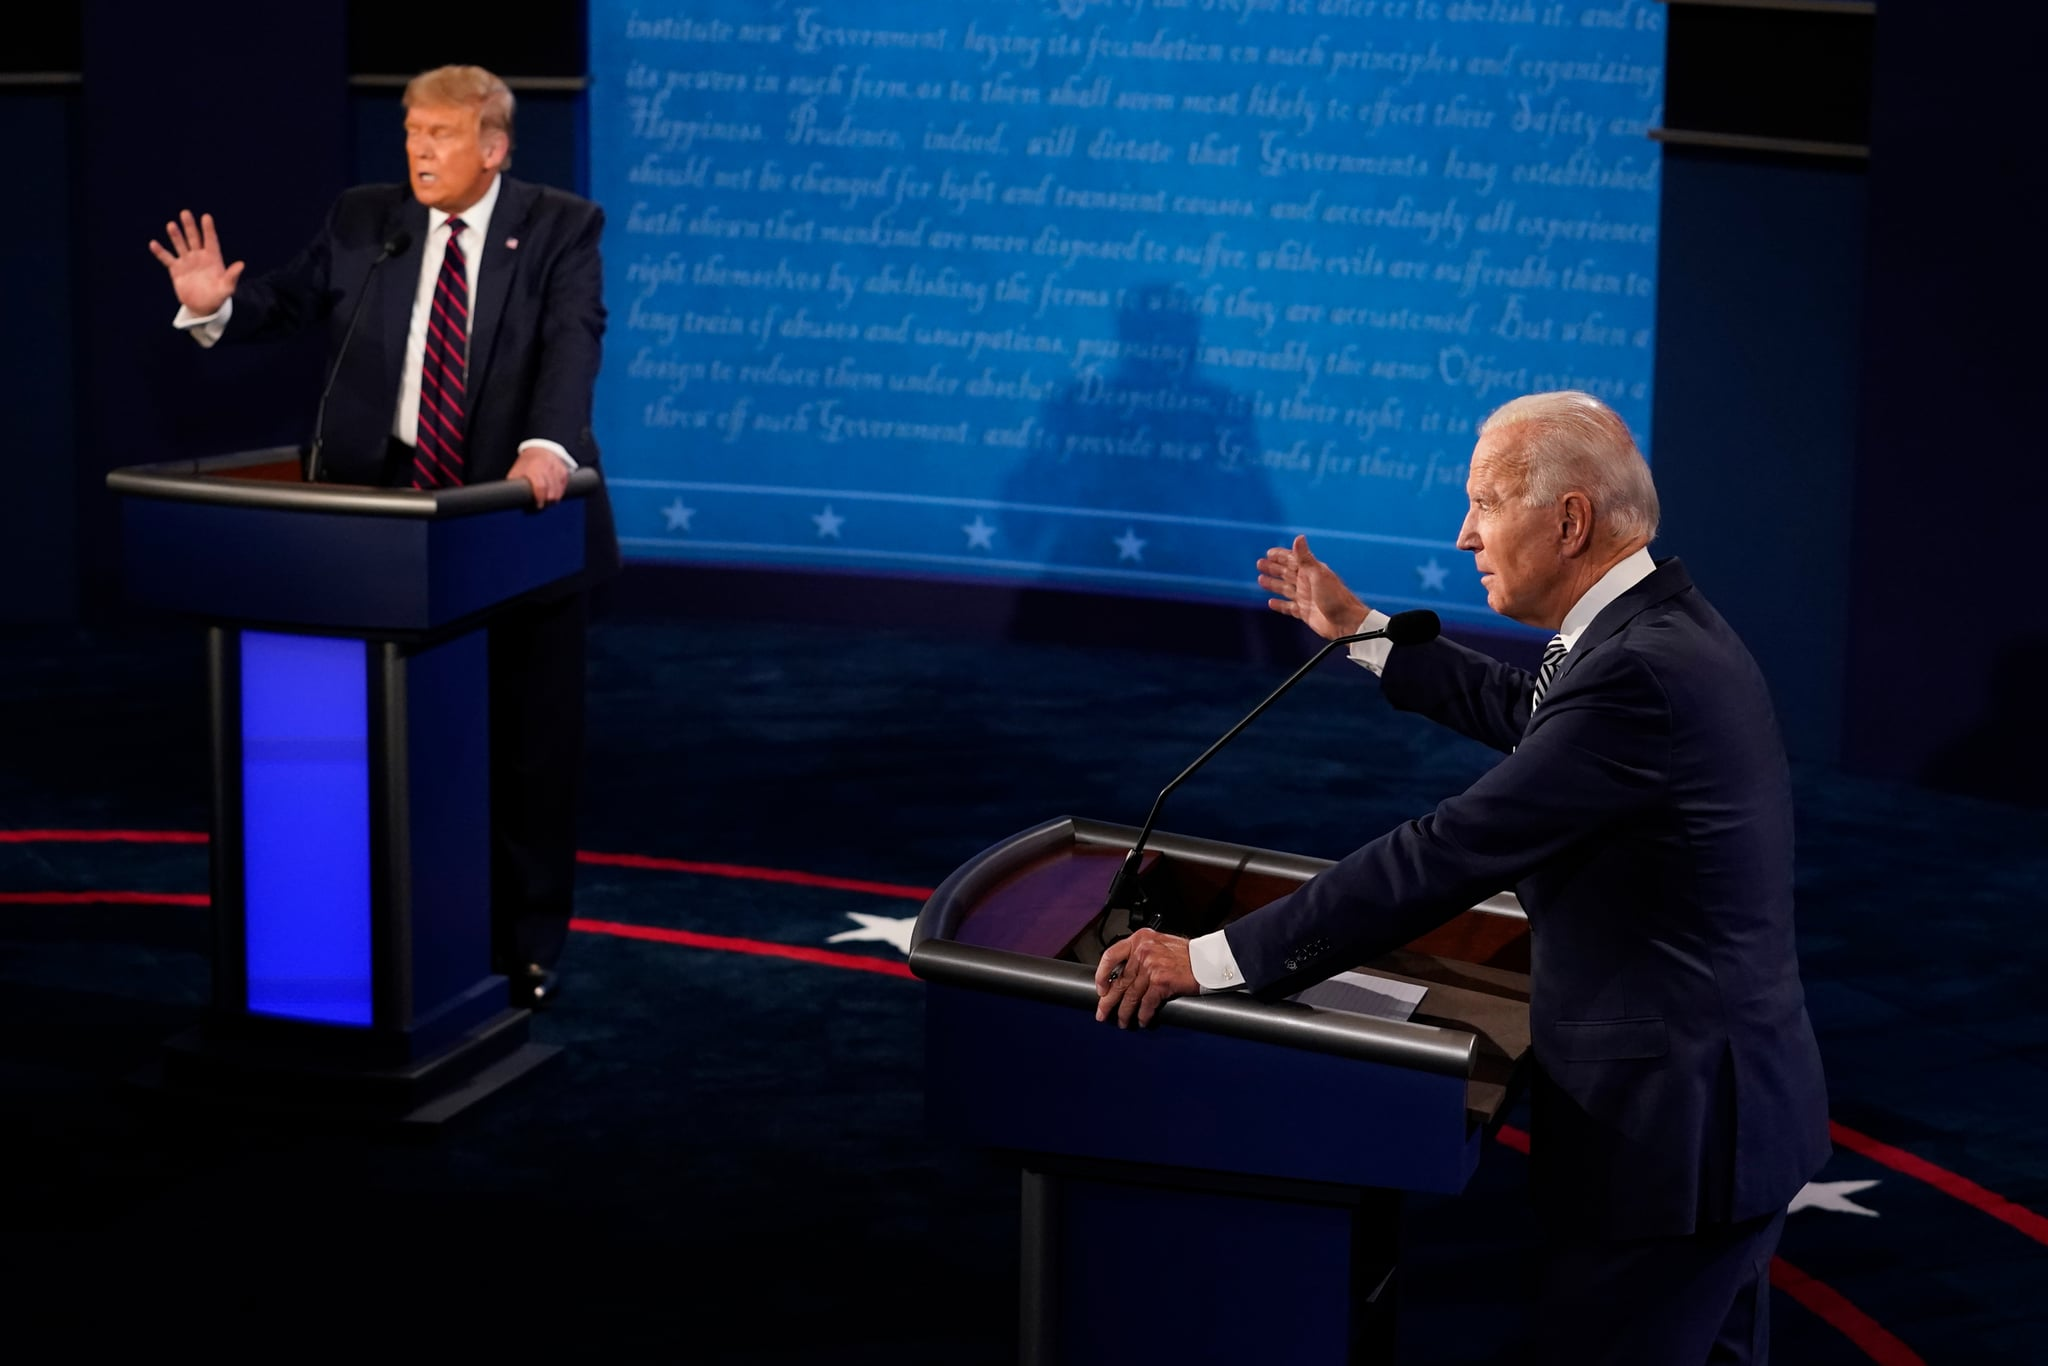 CLEVELAND, OHIO - SEPTEMBER 29:  U.S. President Donald Trump and former Vice President and Democratic presidential nominee Joe Biden speak during the first presidential debate at the Health Education Campus of Case Western Reserve University on September 29, 2020 in Cleveland, Ohio. This is the first of three planned debates between the two candidates in the lead up to the election on November 3. (Photo by Morry Gash-Pool/Getty Images)